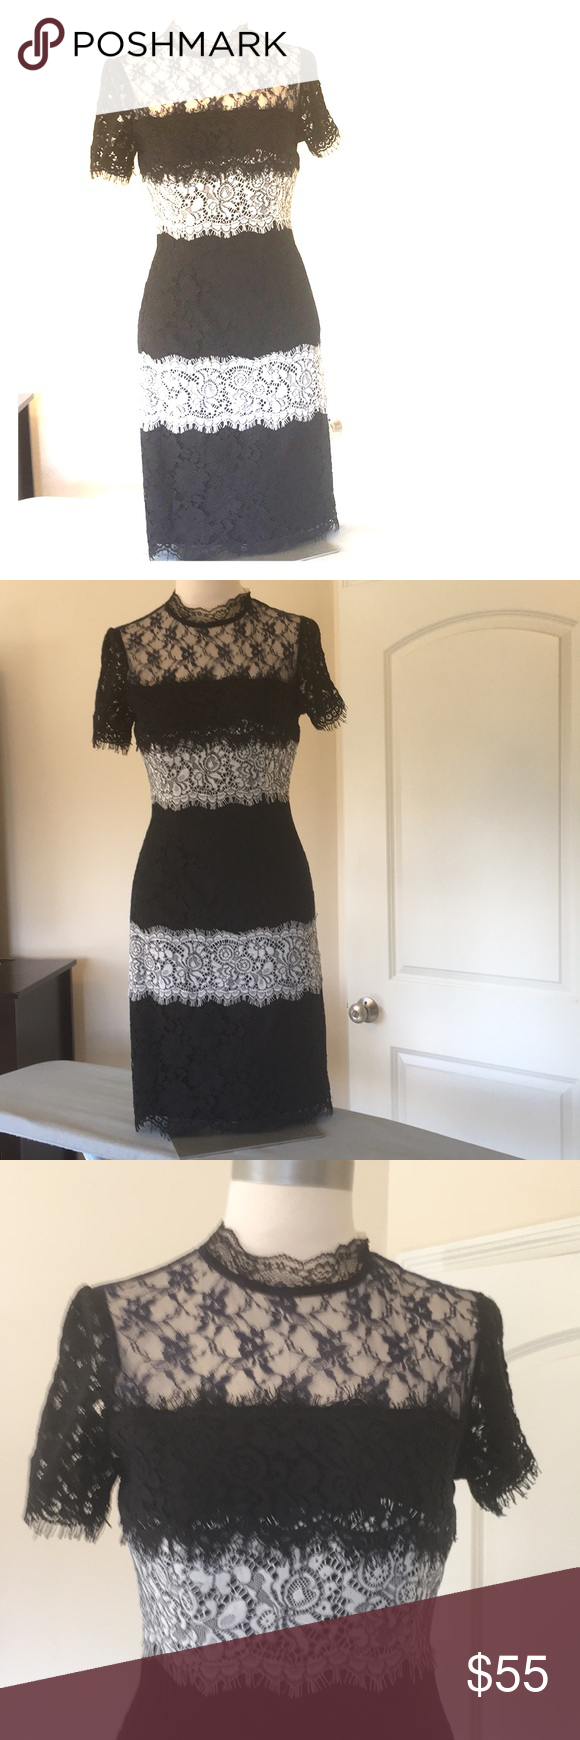 Everleigh Dress Navy Black Cream Size Xs Nwt Beautiful Black Navy Cream Color Lace Dress With Attached Black Slip Dresses Cream Color Lace Dress Clothes Design [ 1740 x 580 Pixel ]